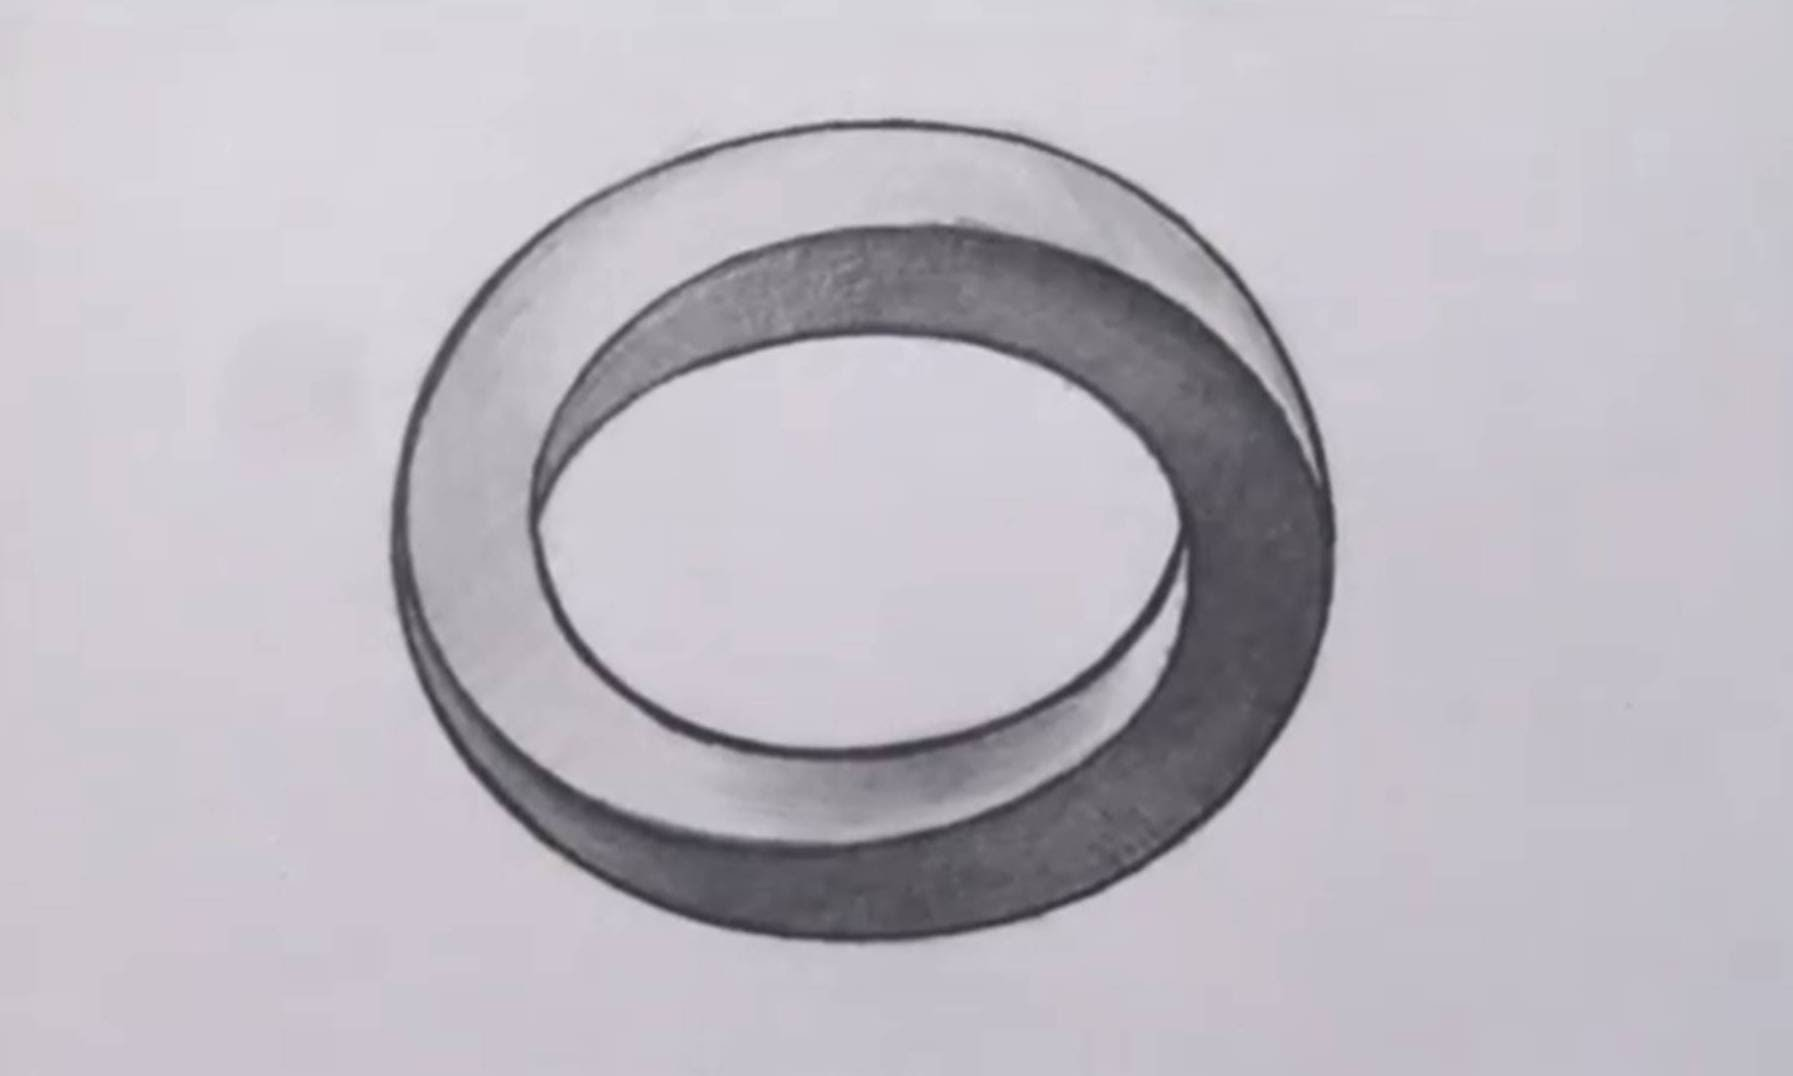 Drawn optical illusion drawable How Oval Three Optical Draw